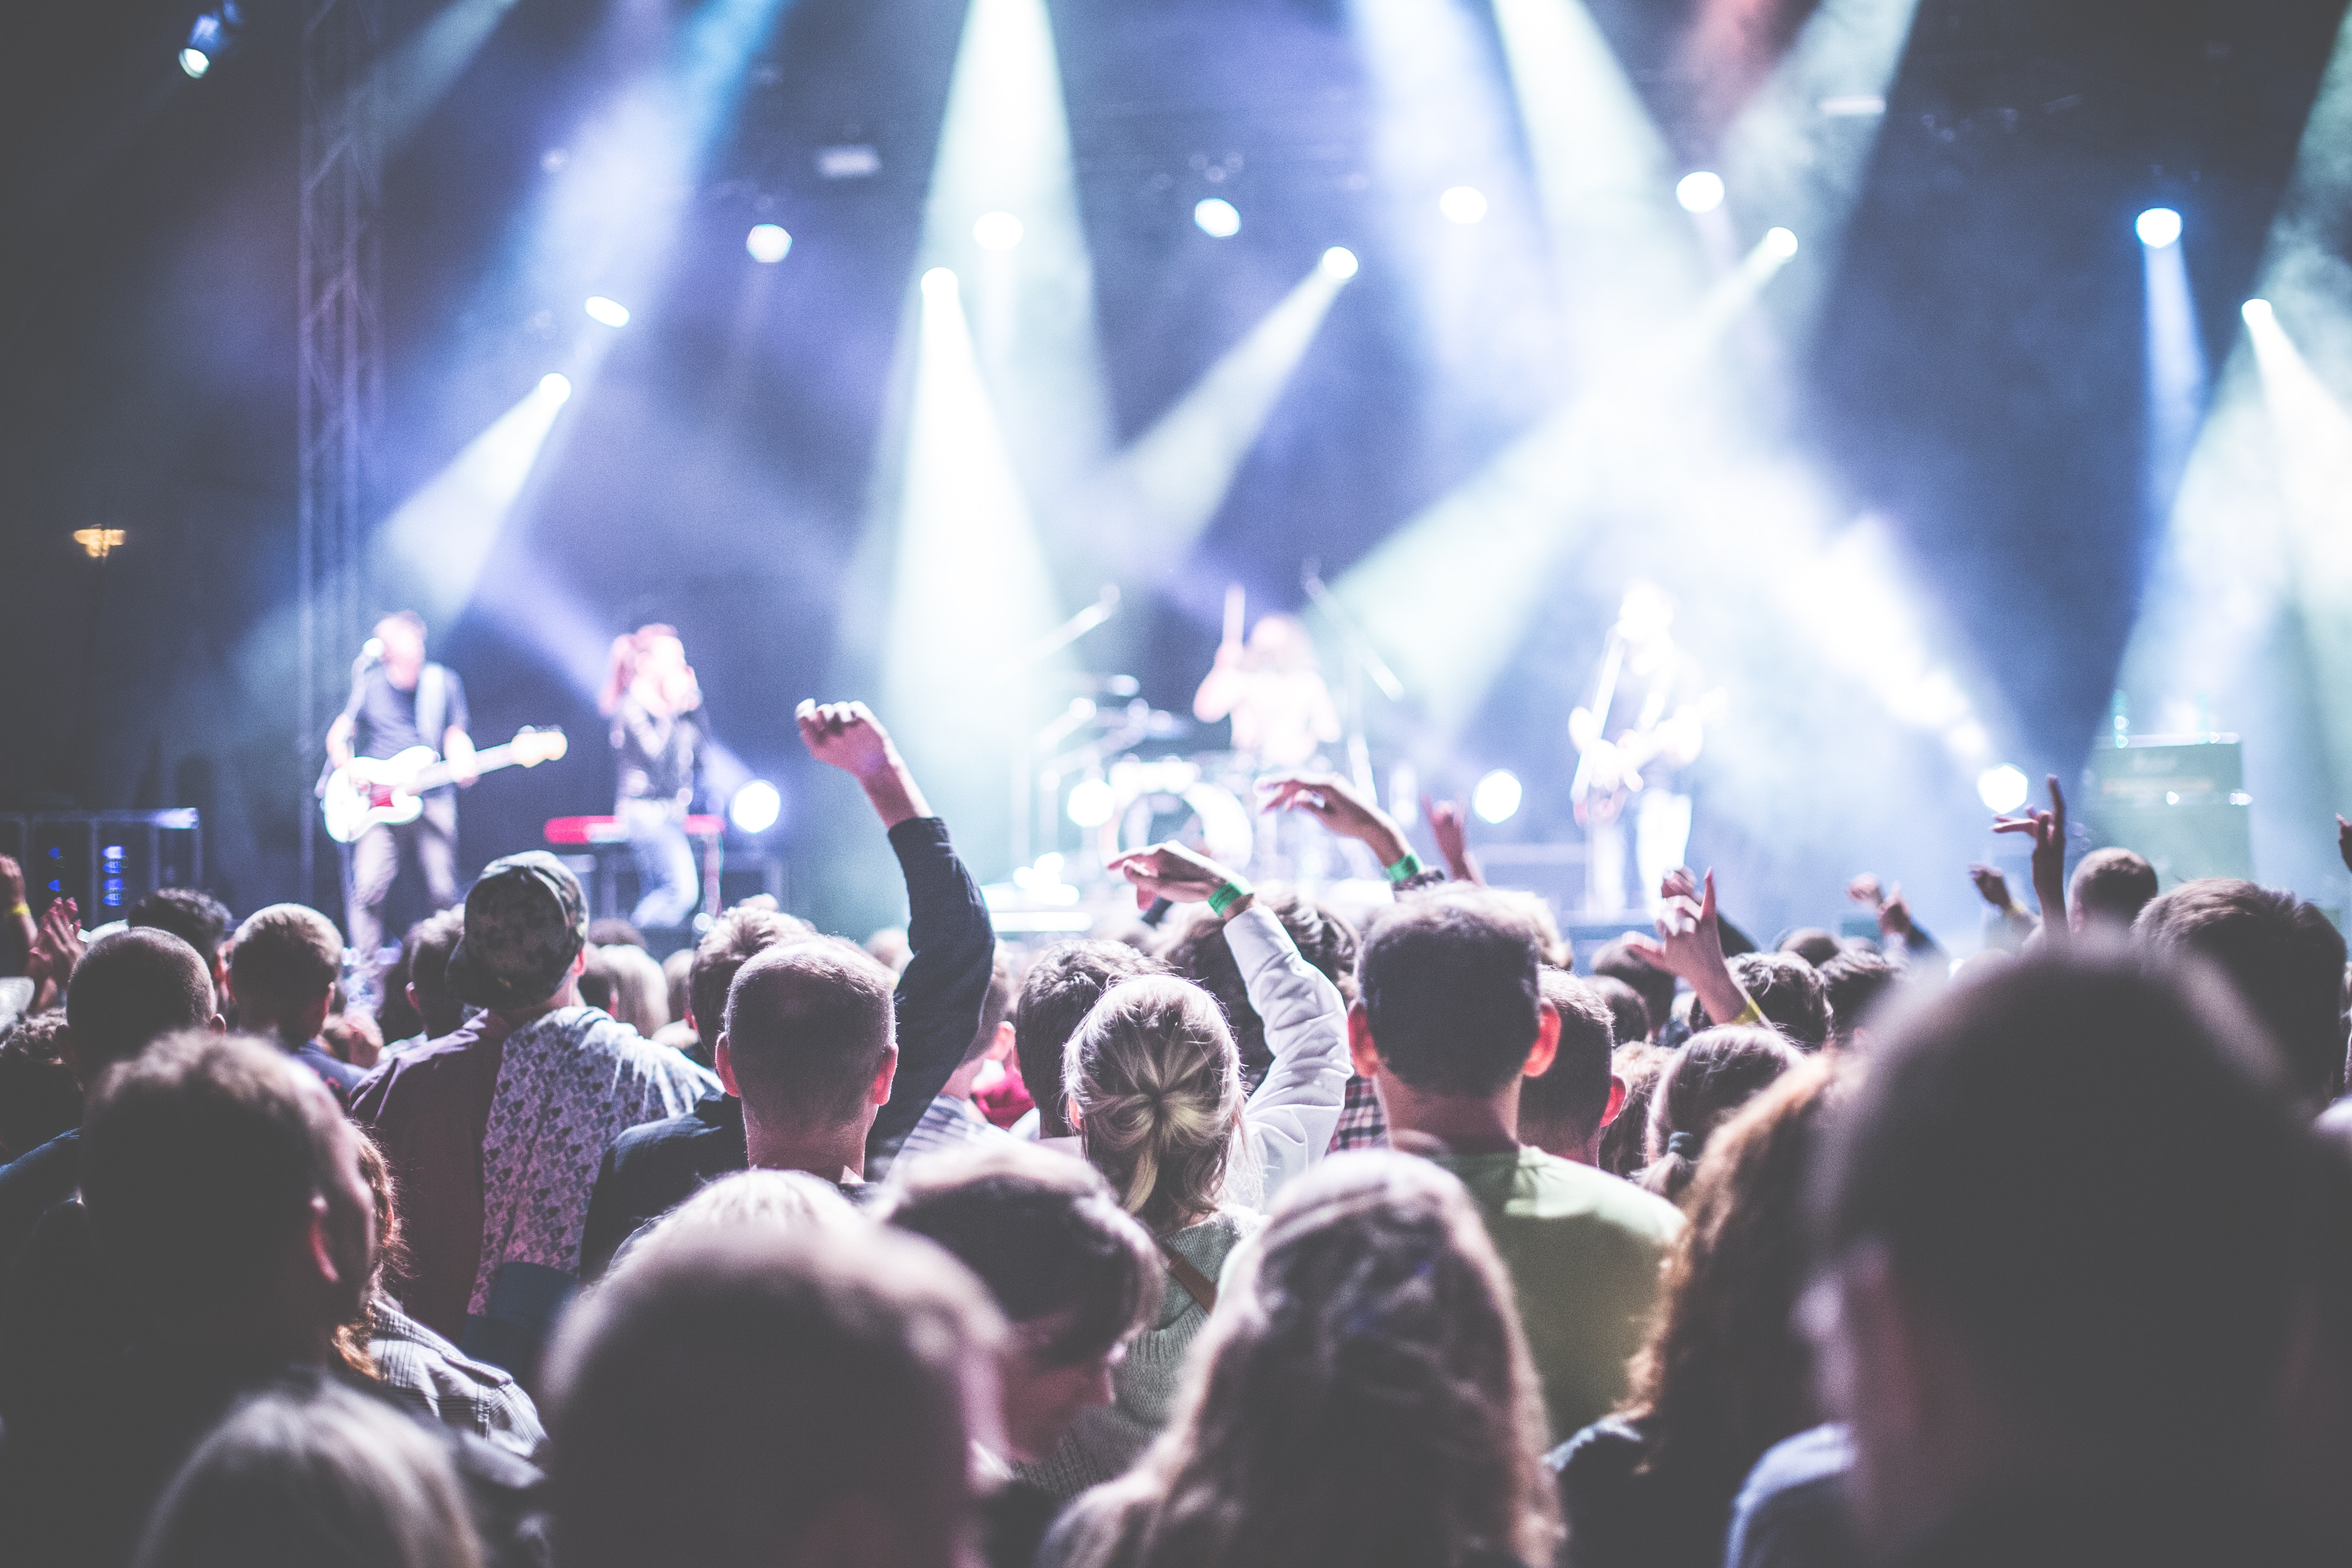 Top 3 ticket sales tools for events